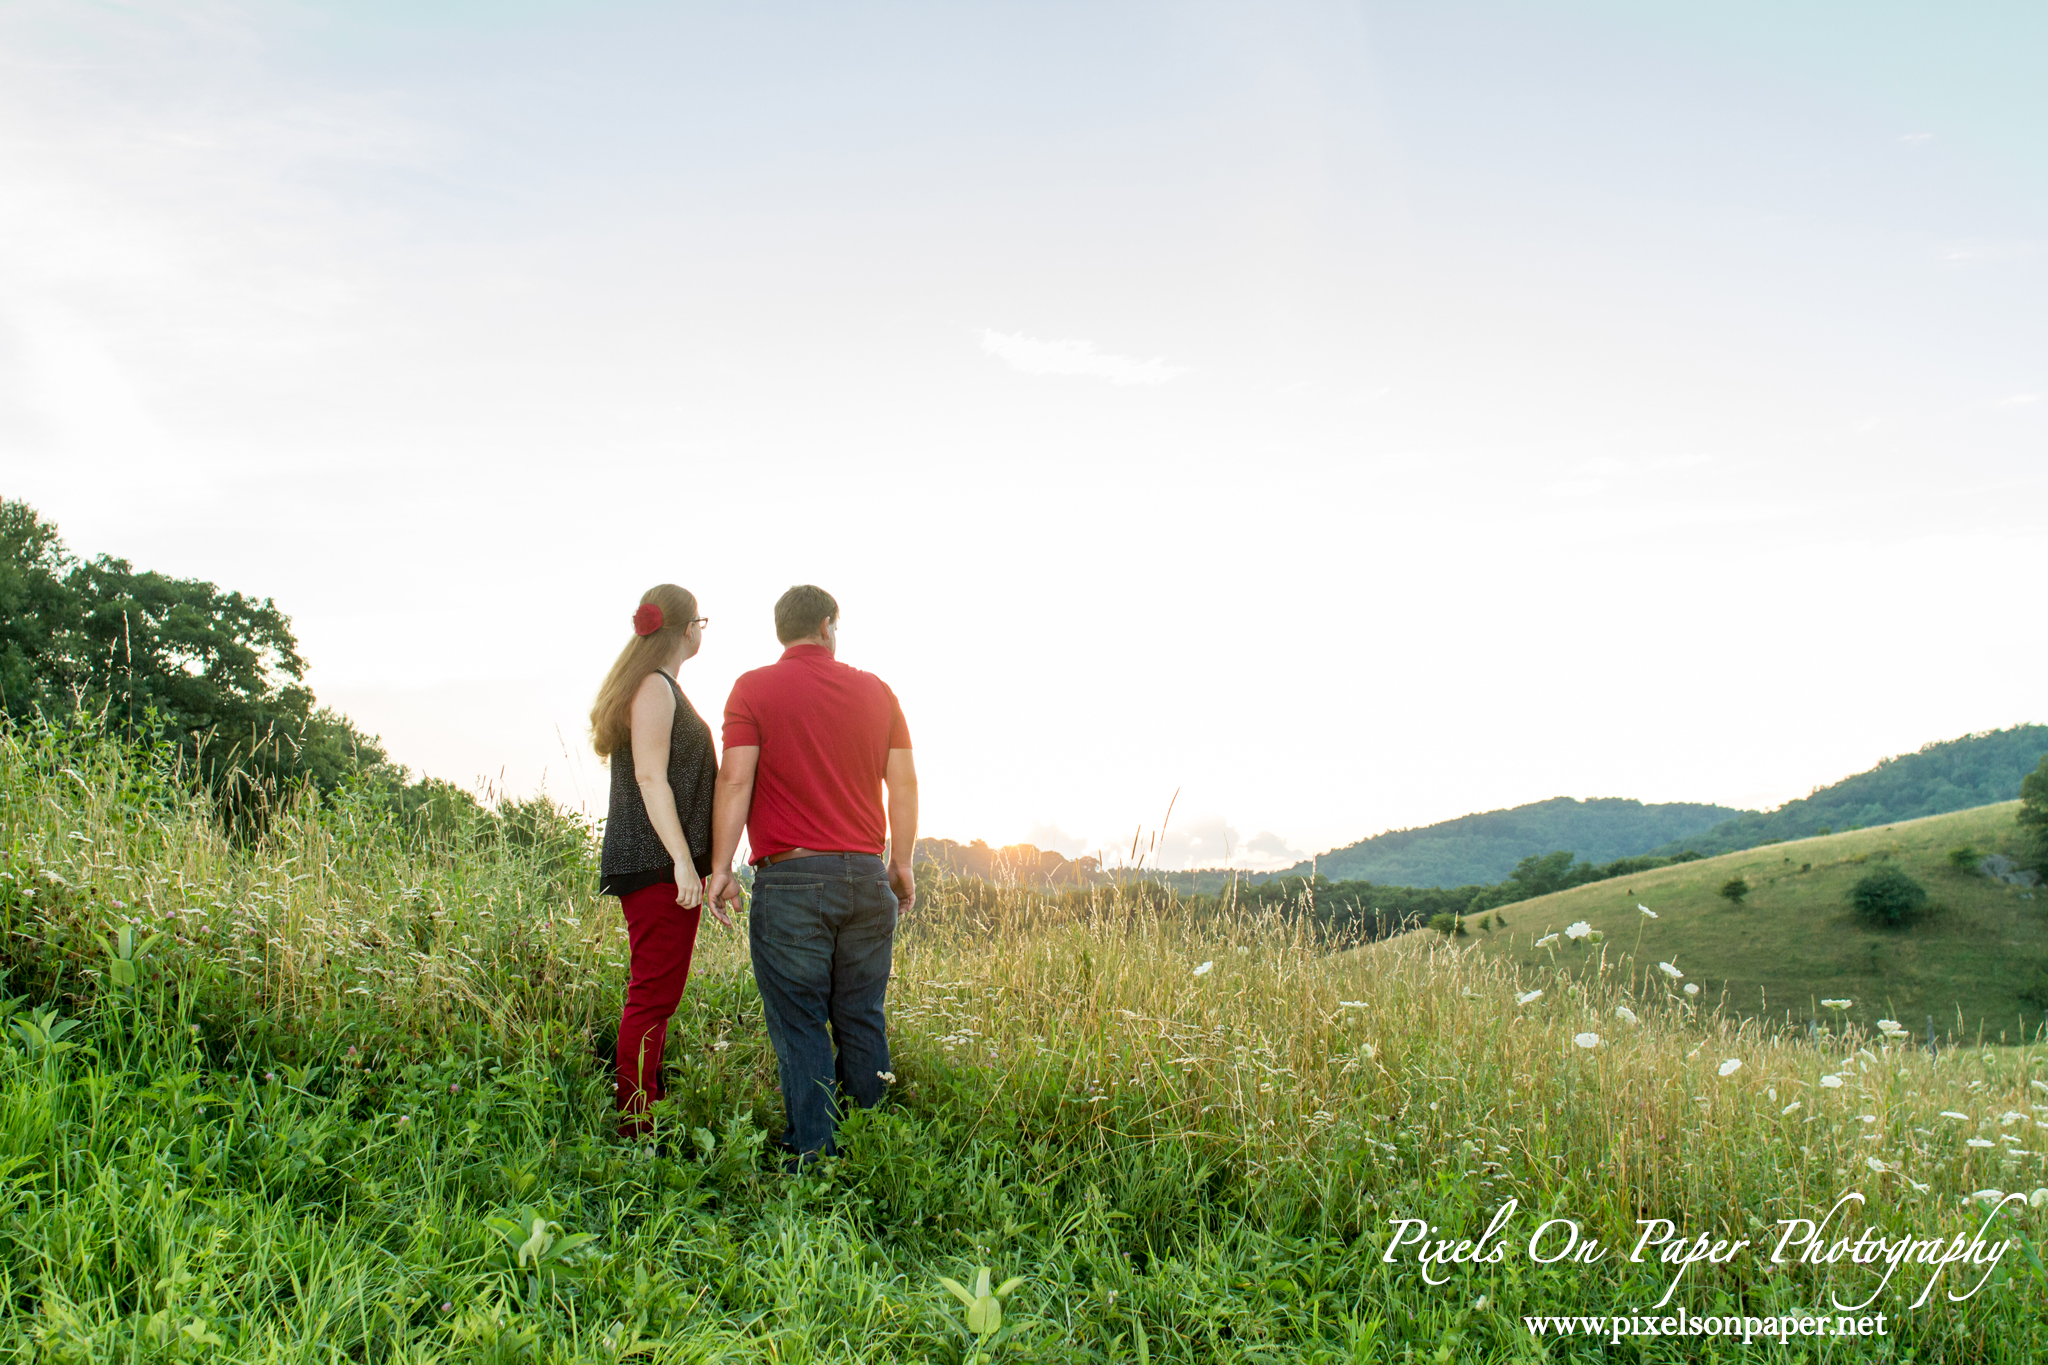 Blowing Rock NC wedding photographer, pixels on paper photographers outdoor engagement photo